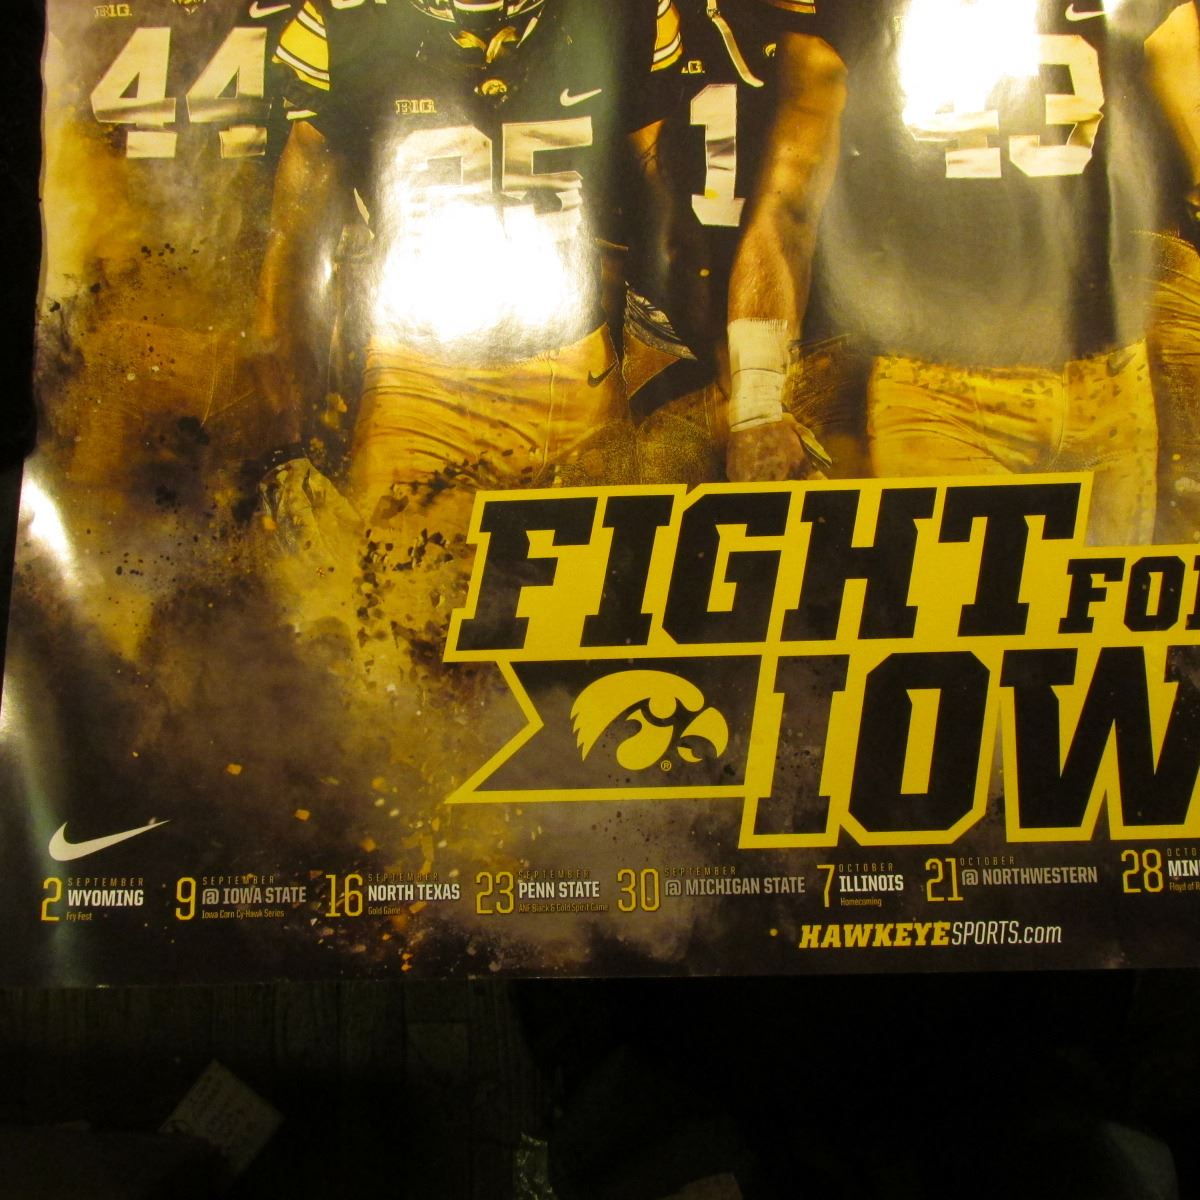 fight for iowa hawkeyes football poster typewritten rose bowl trip revised itinerary state unive